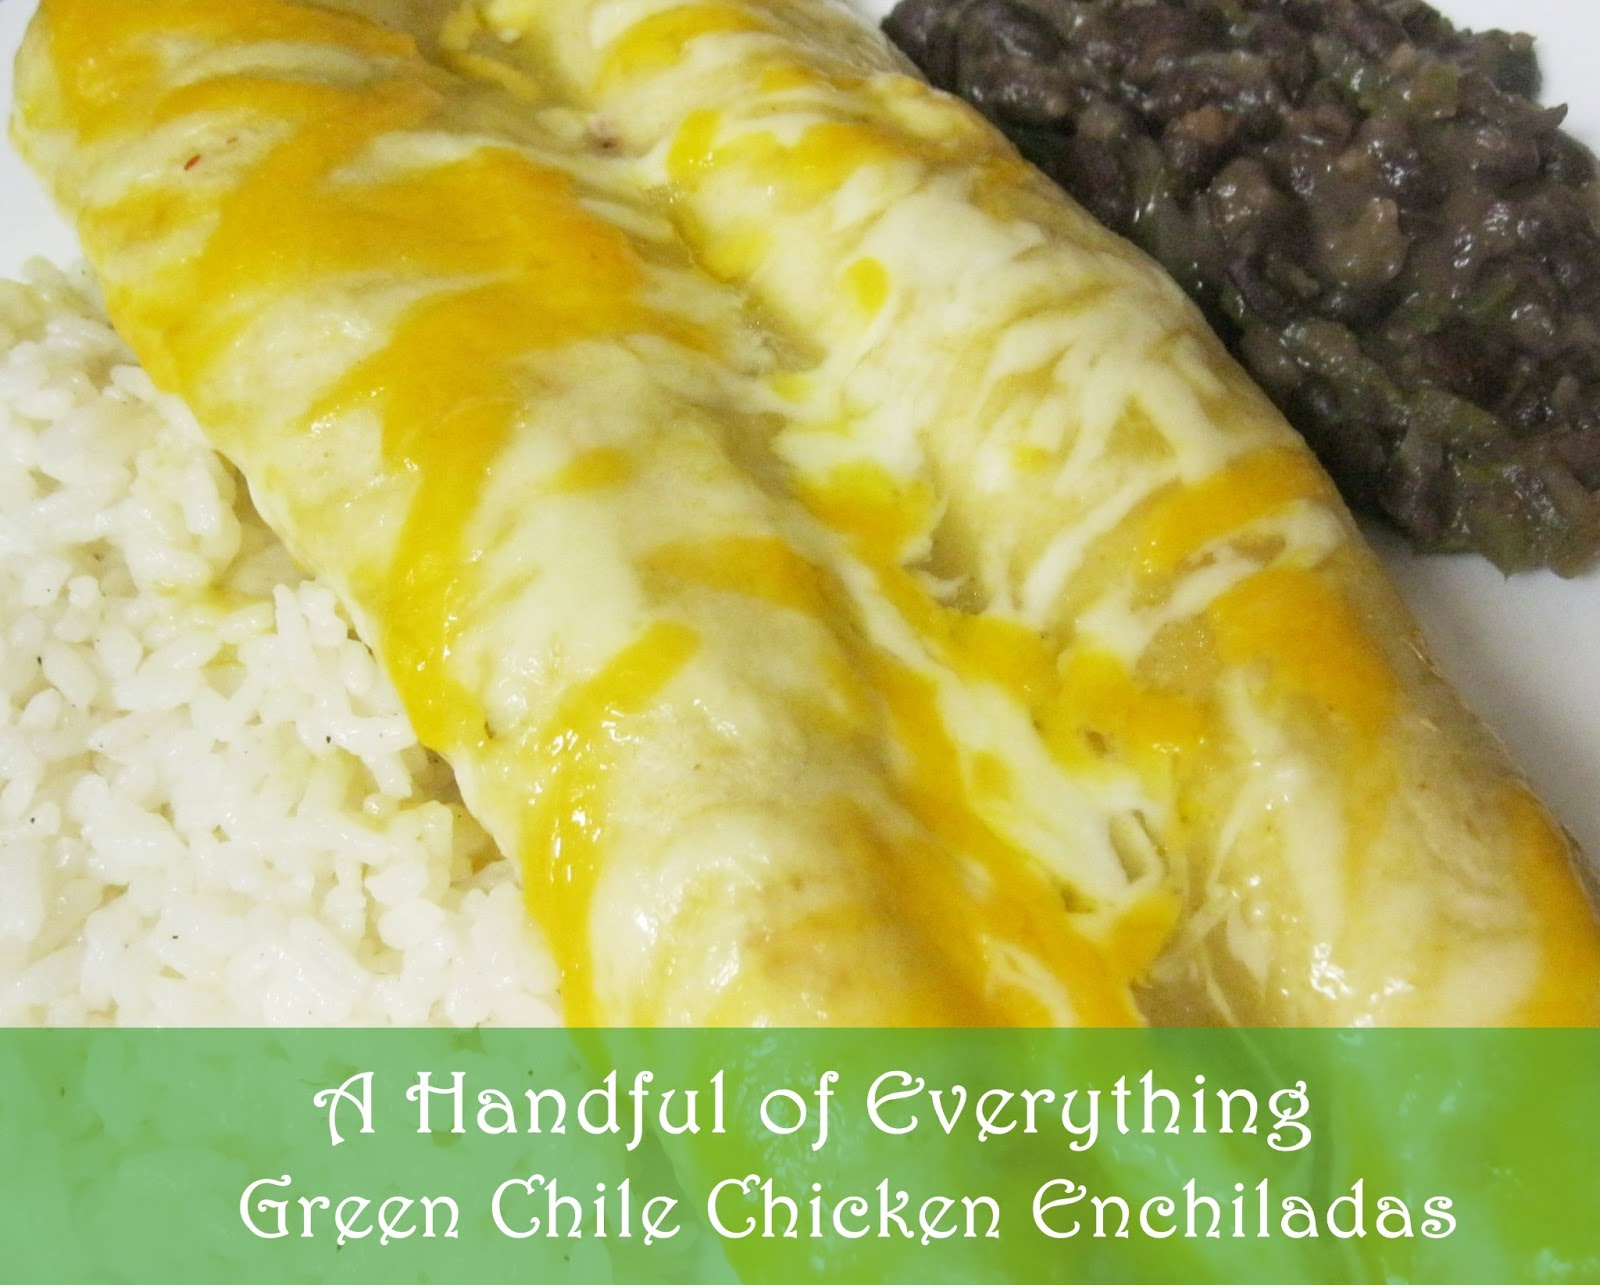 green chile chicken enchiladas 2 10 oz cans green enchilada